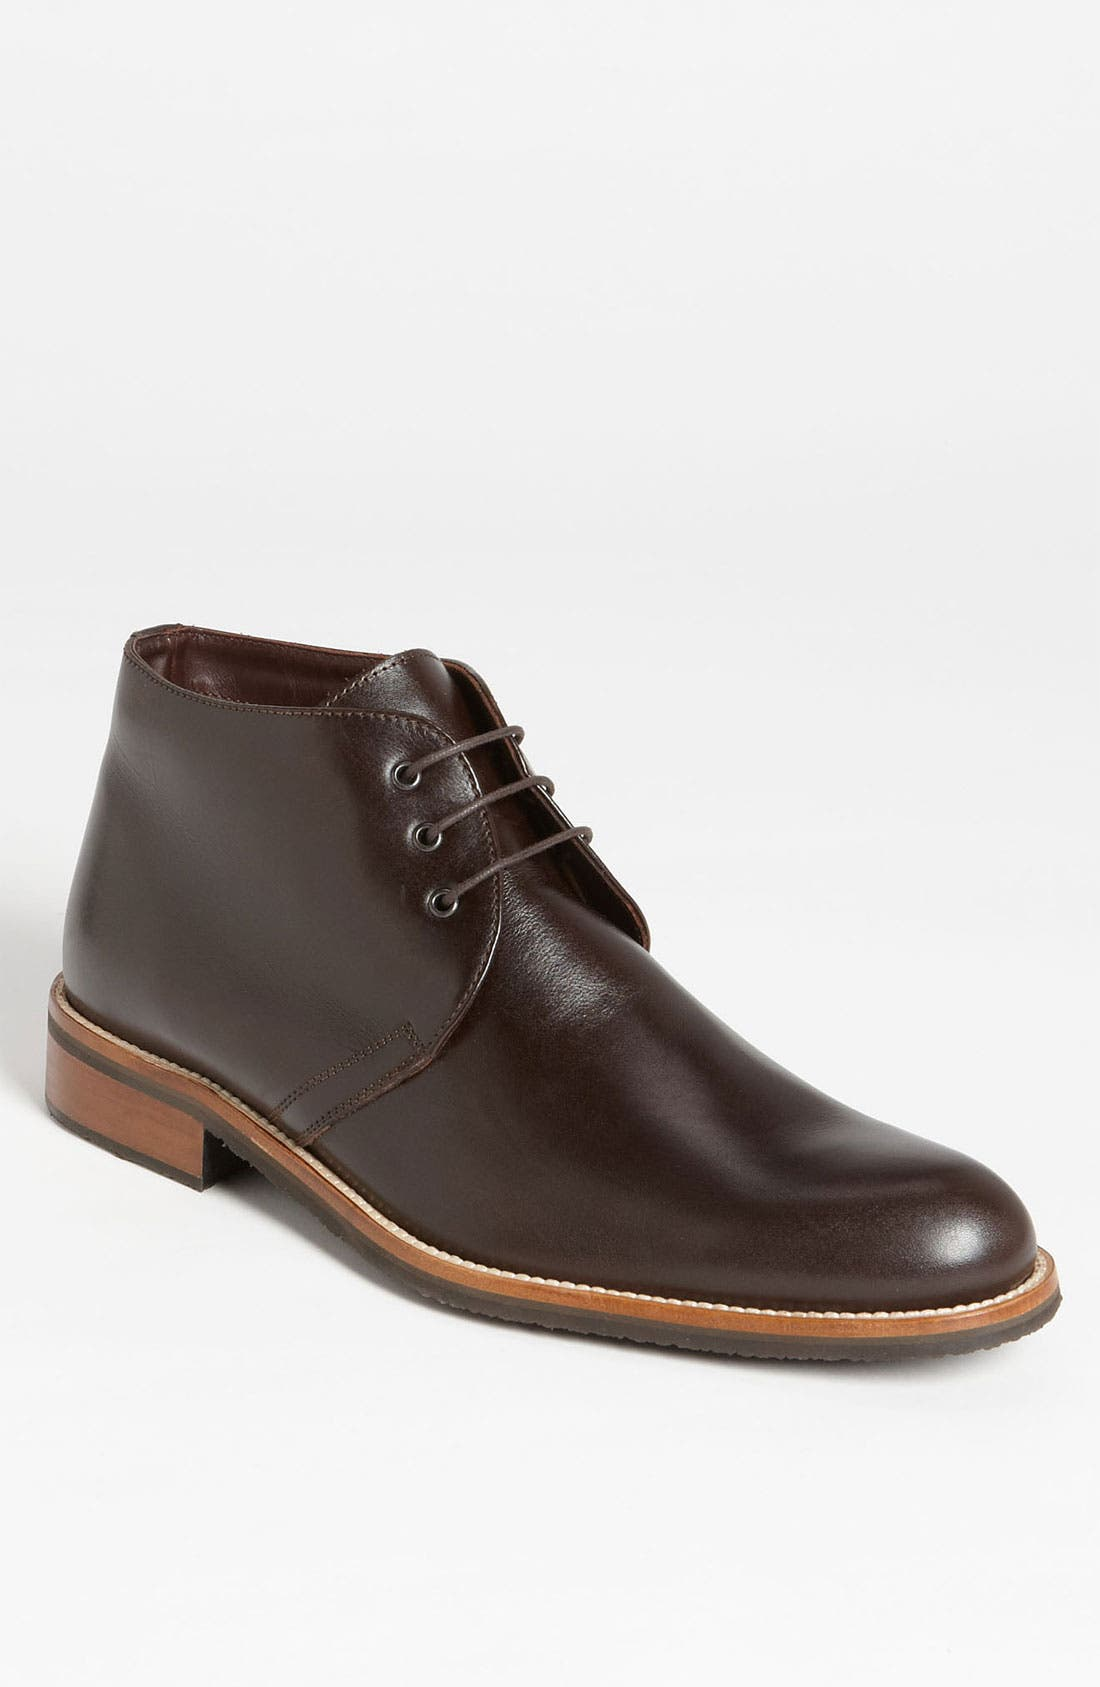 Alternate Image 1 Selected - Thomas Dean Polished Chukka Boot